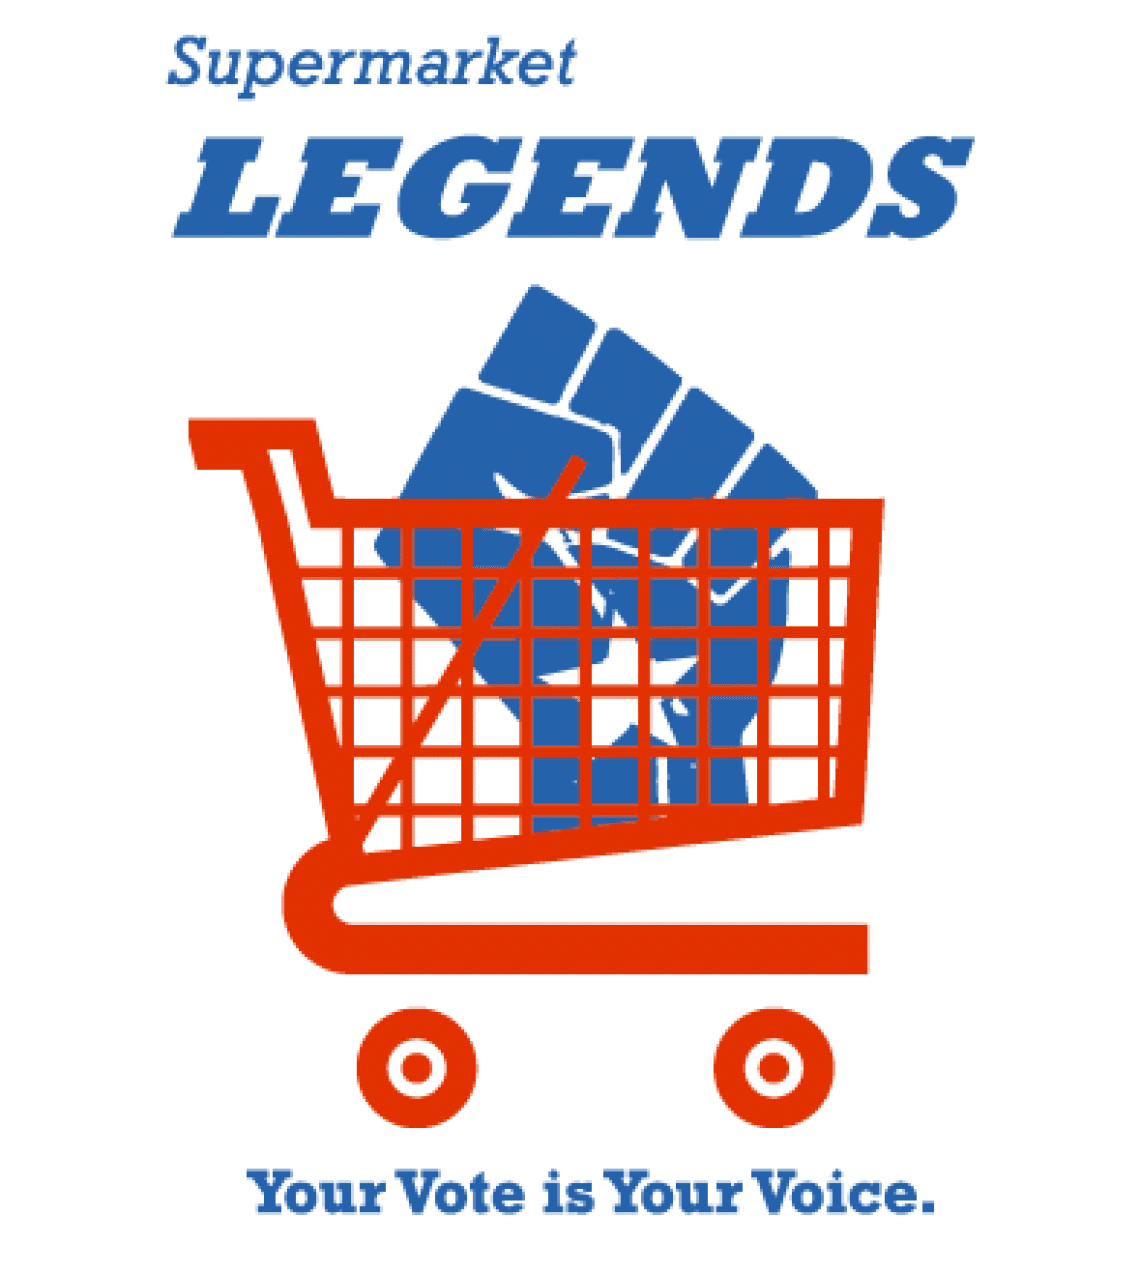 Supermarket Legends logo